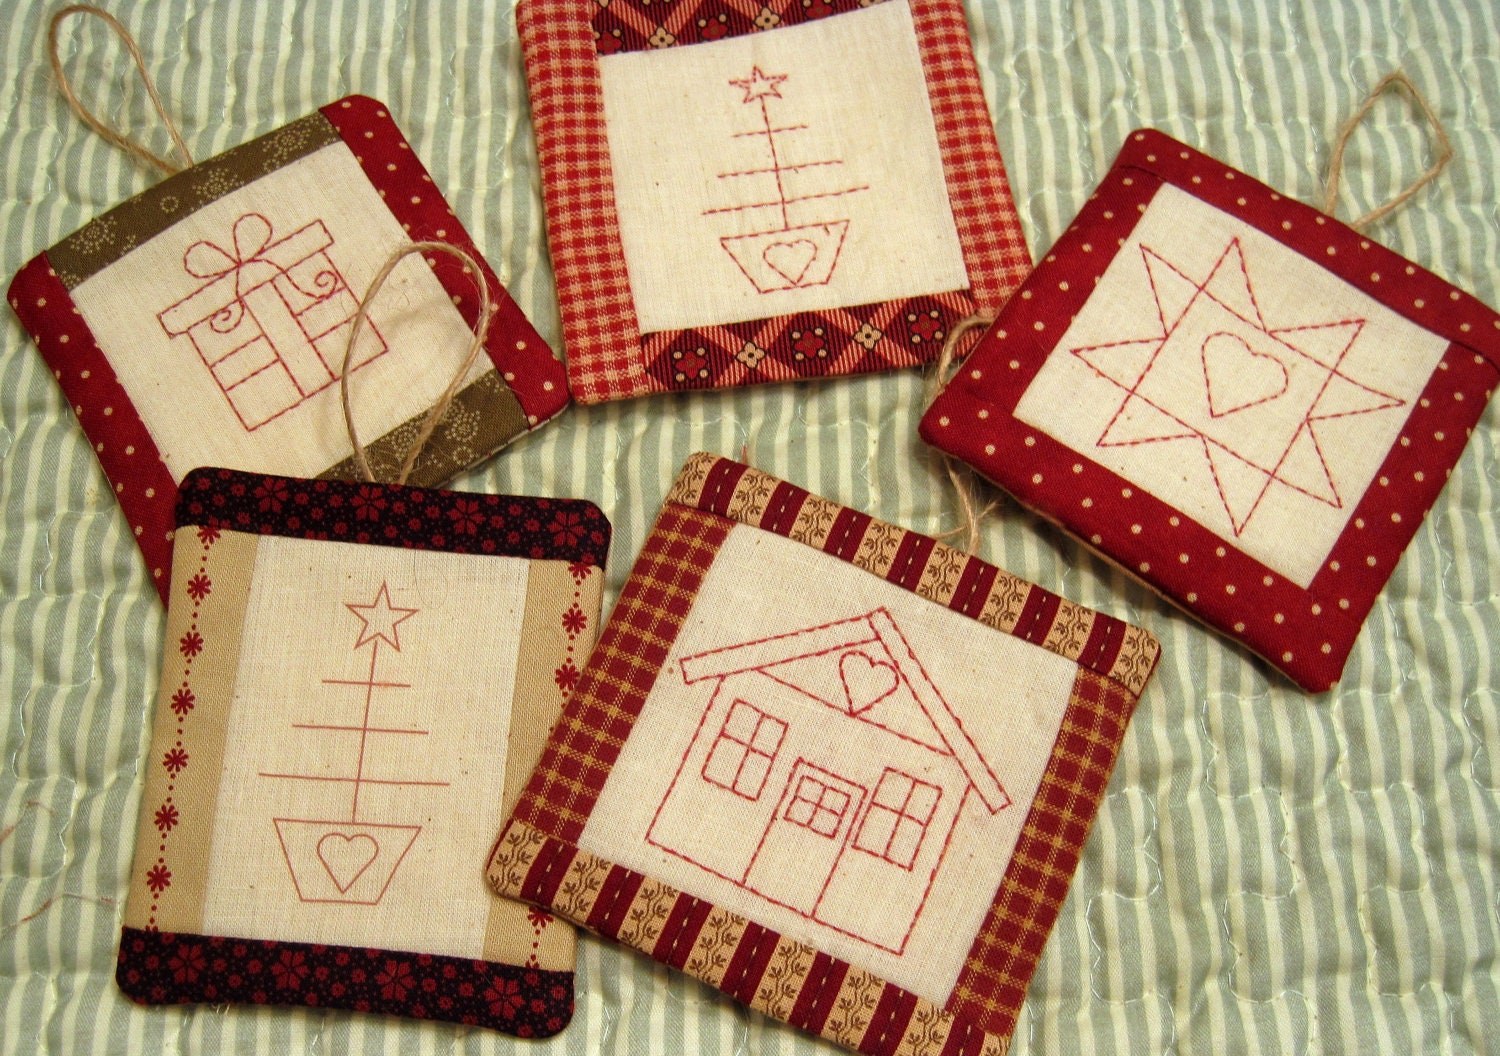 Embroidered christmas ornaments - Pattern For 4 Embroidered Christmas Ornaments